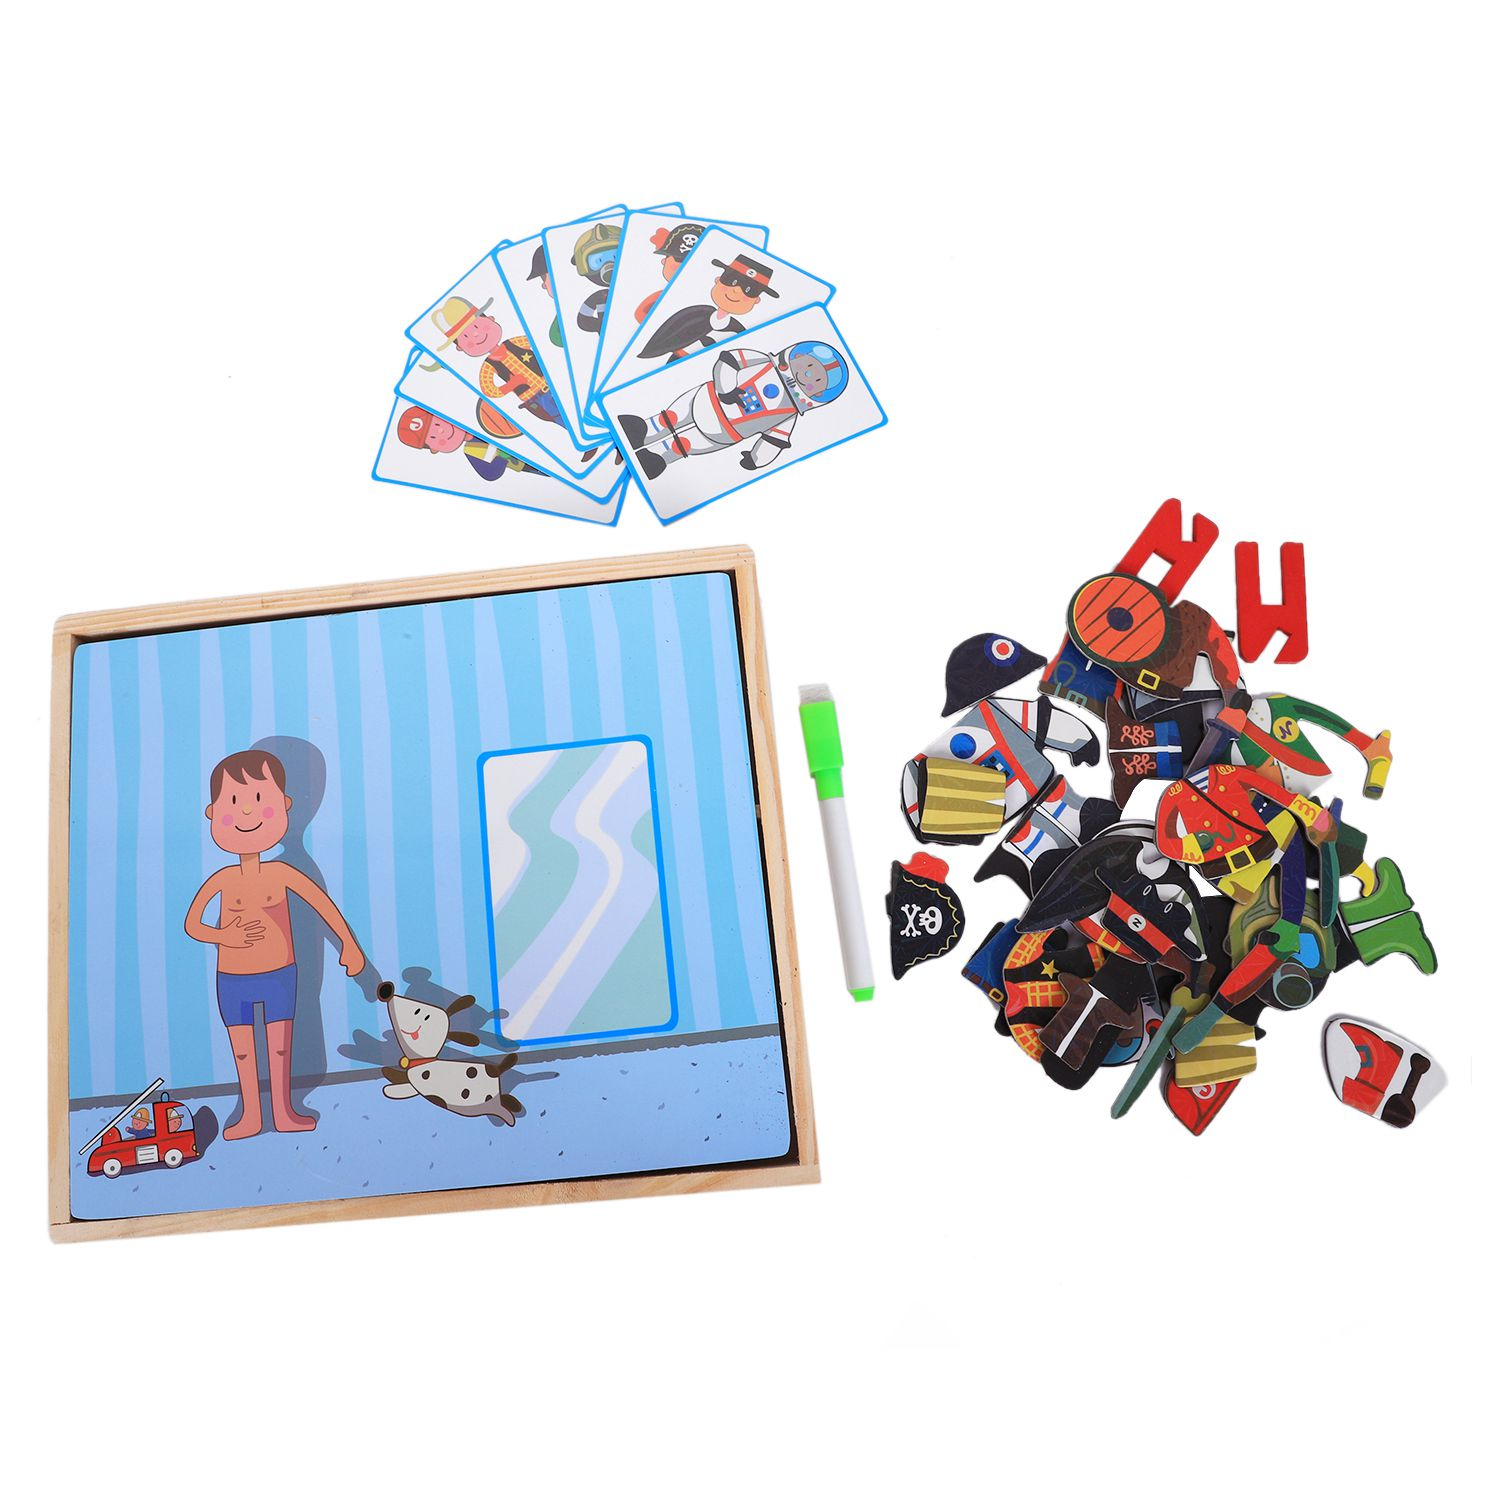 MWZ magnetic fun jigsaw children wooden puzzle board box pieces games cartoon educational drawing baby toys for girls boys, ch